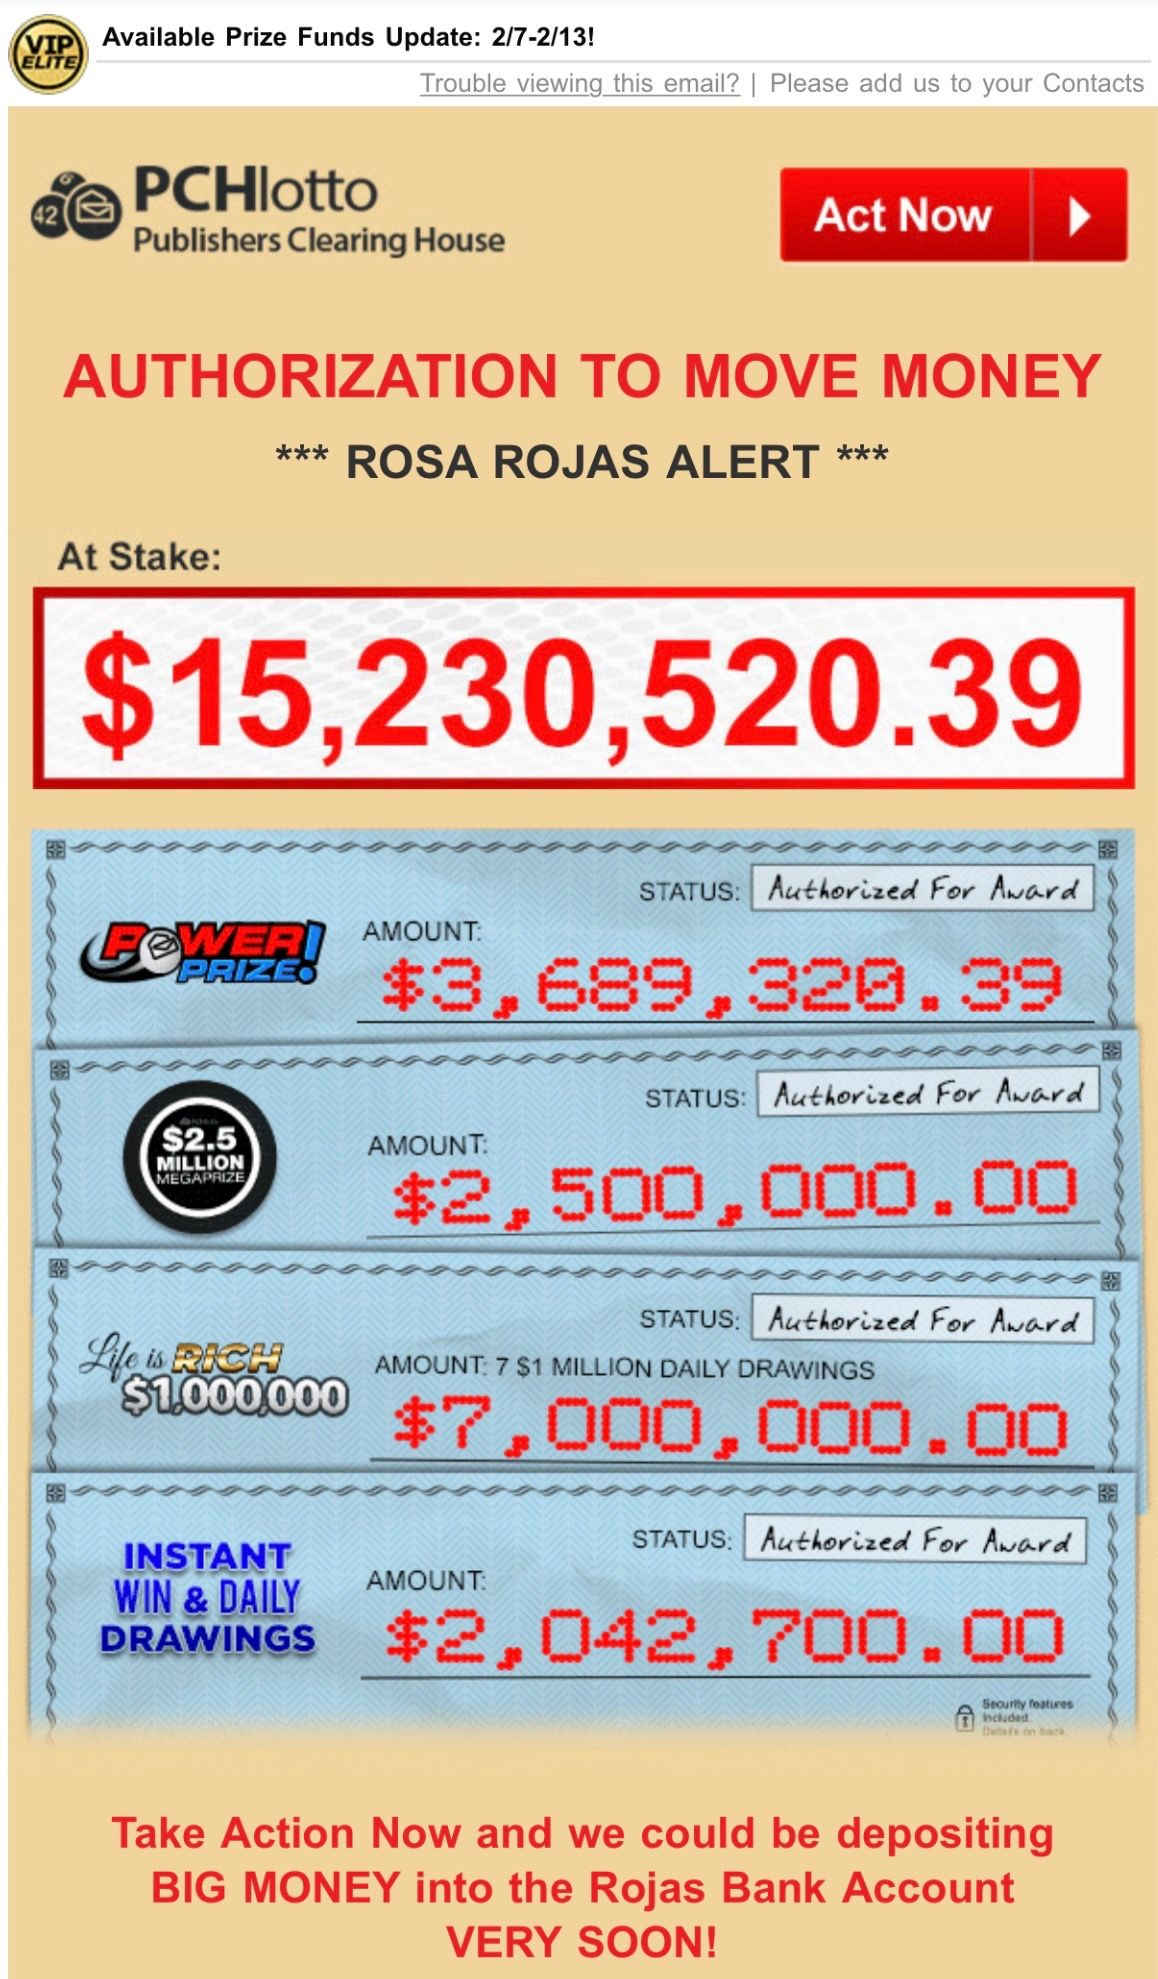 PCH LOTTO ACTNOW AUTHORIZATION TO MOVE MONEY ALERT I ROSA ROJAS